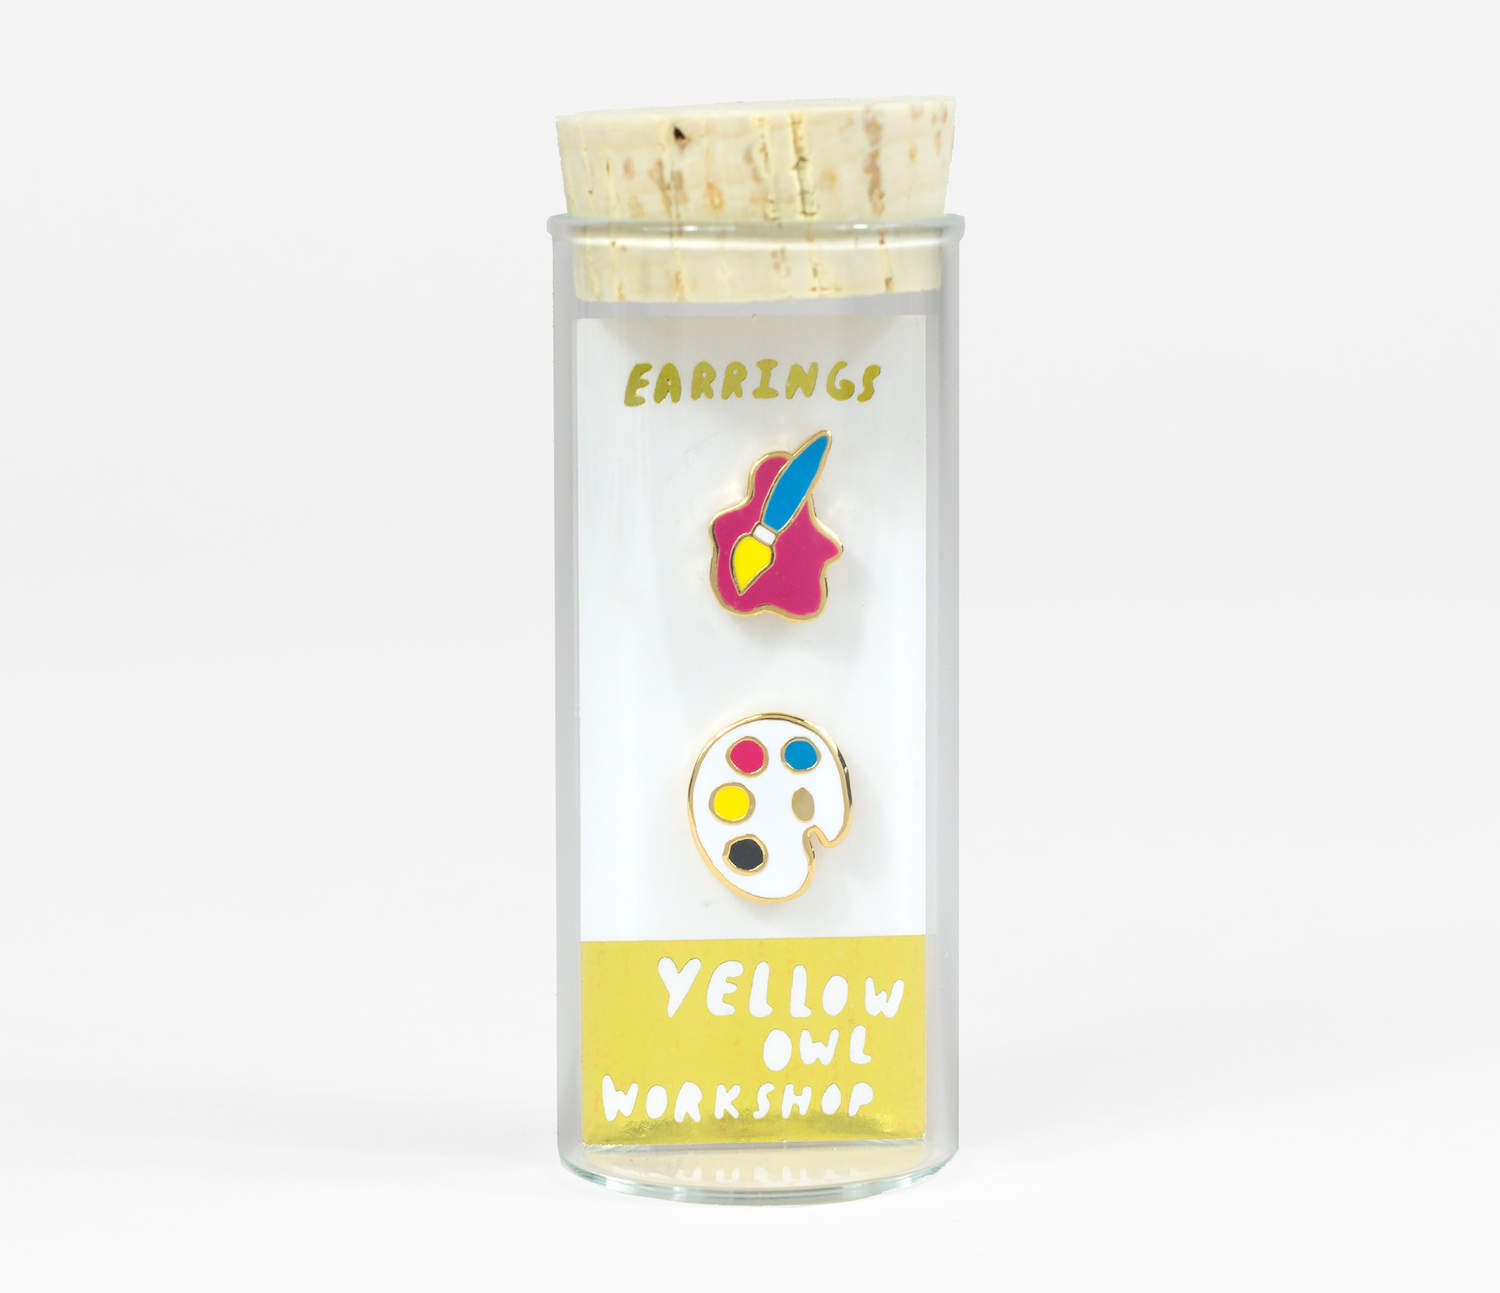 Yellow owl paint brush and palette mismatched earrings main 5a7e070ec2241 1500